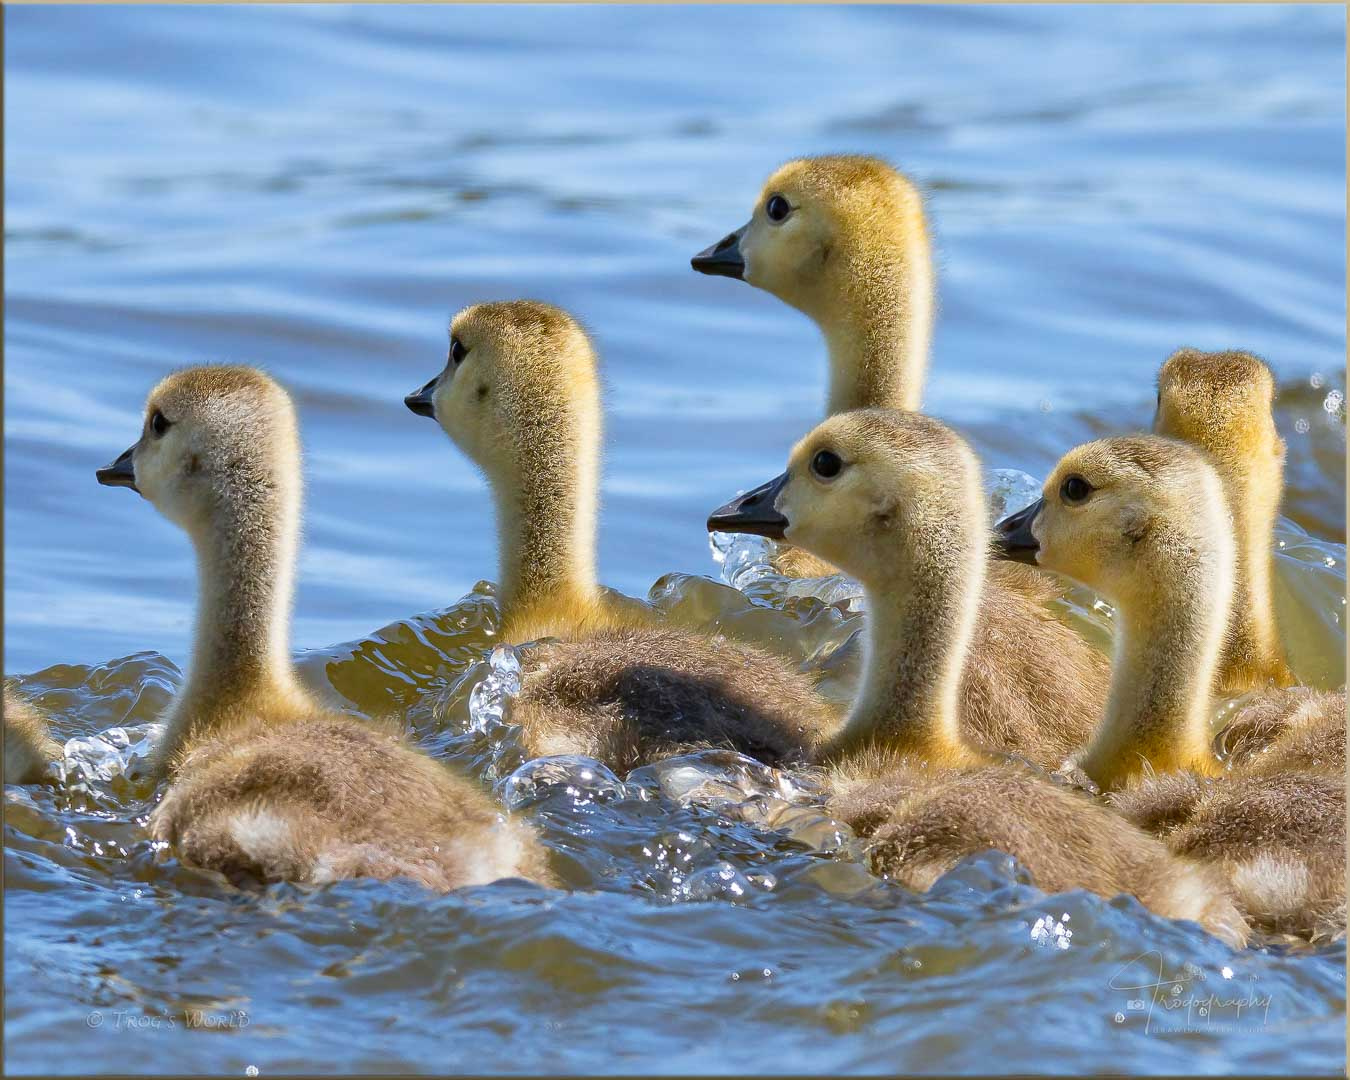 Goslings on the move in the pond